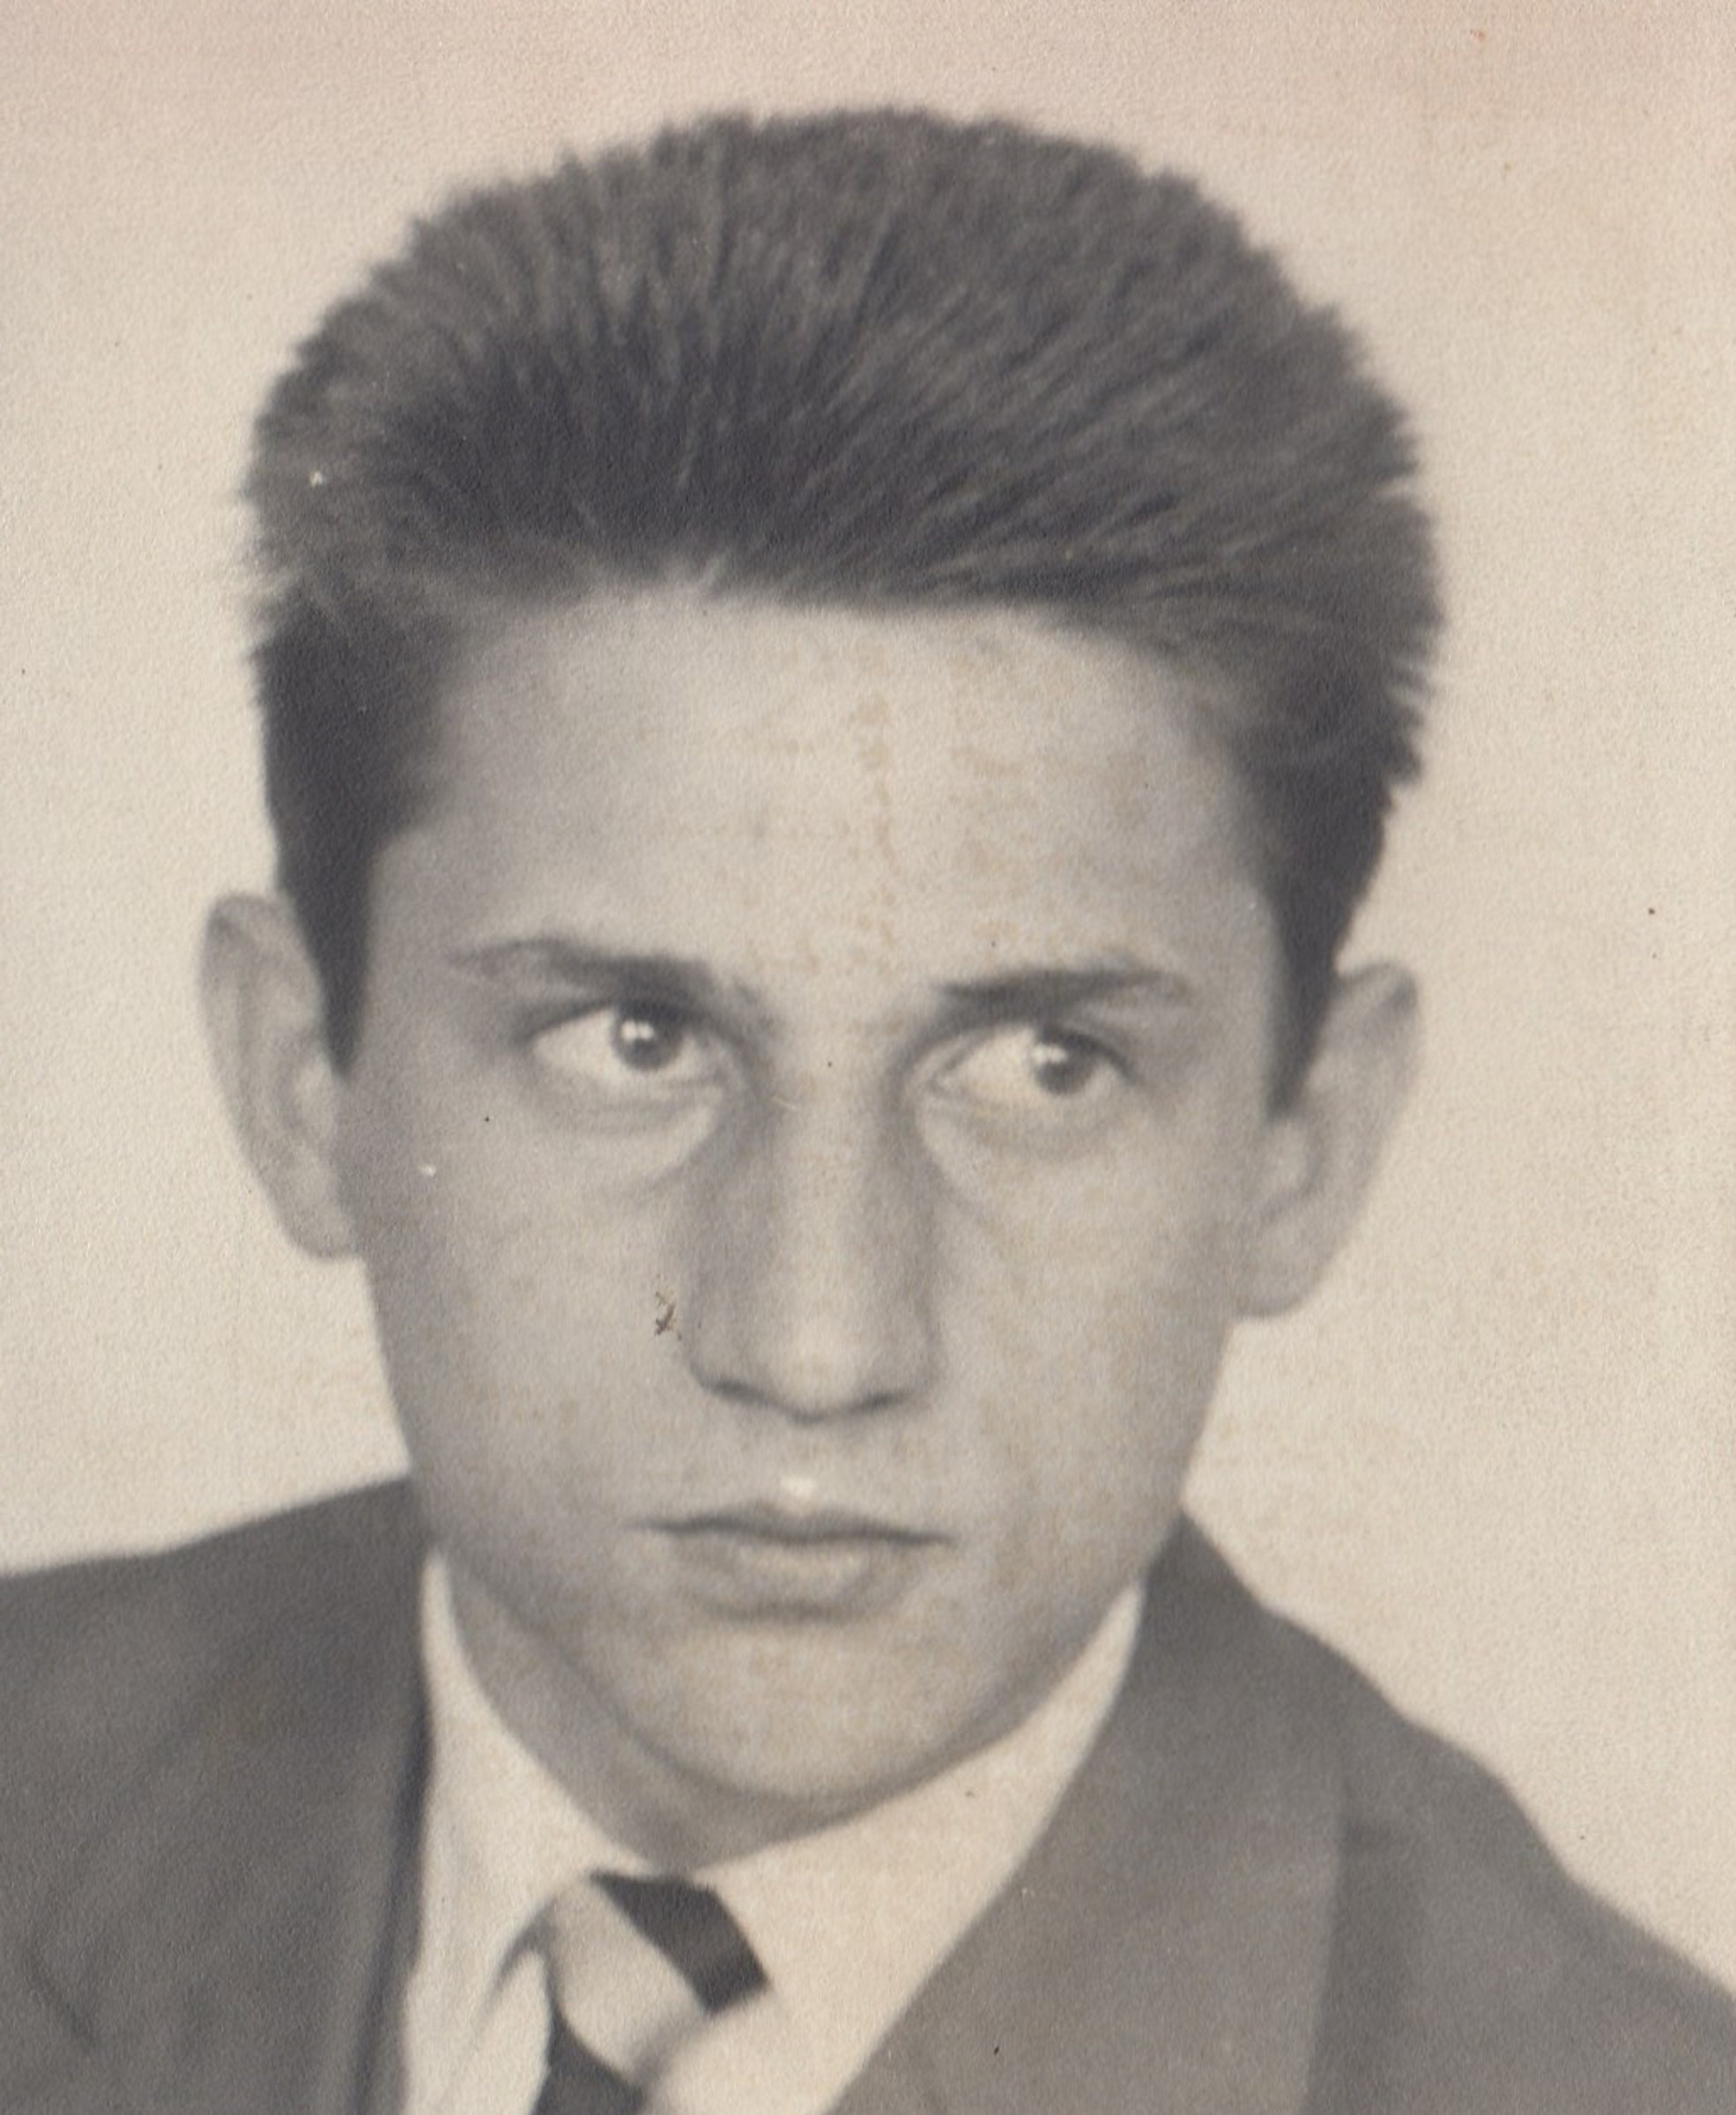 Graduation picture of Vaclav Andres, in 1961